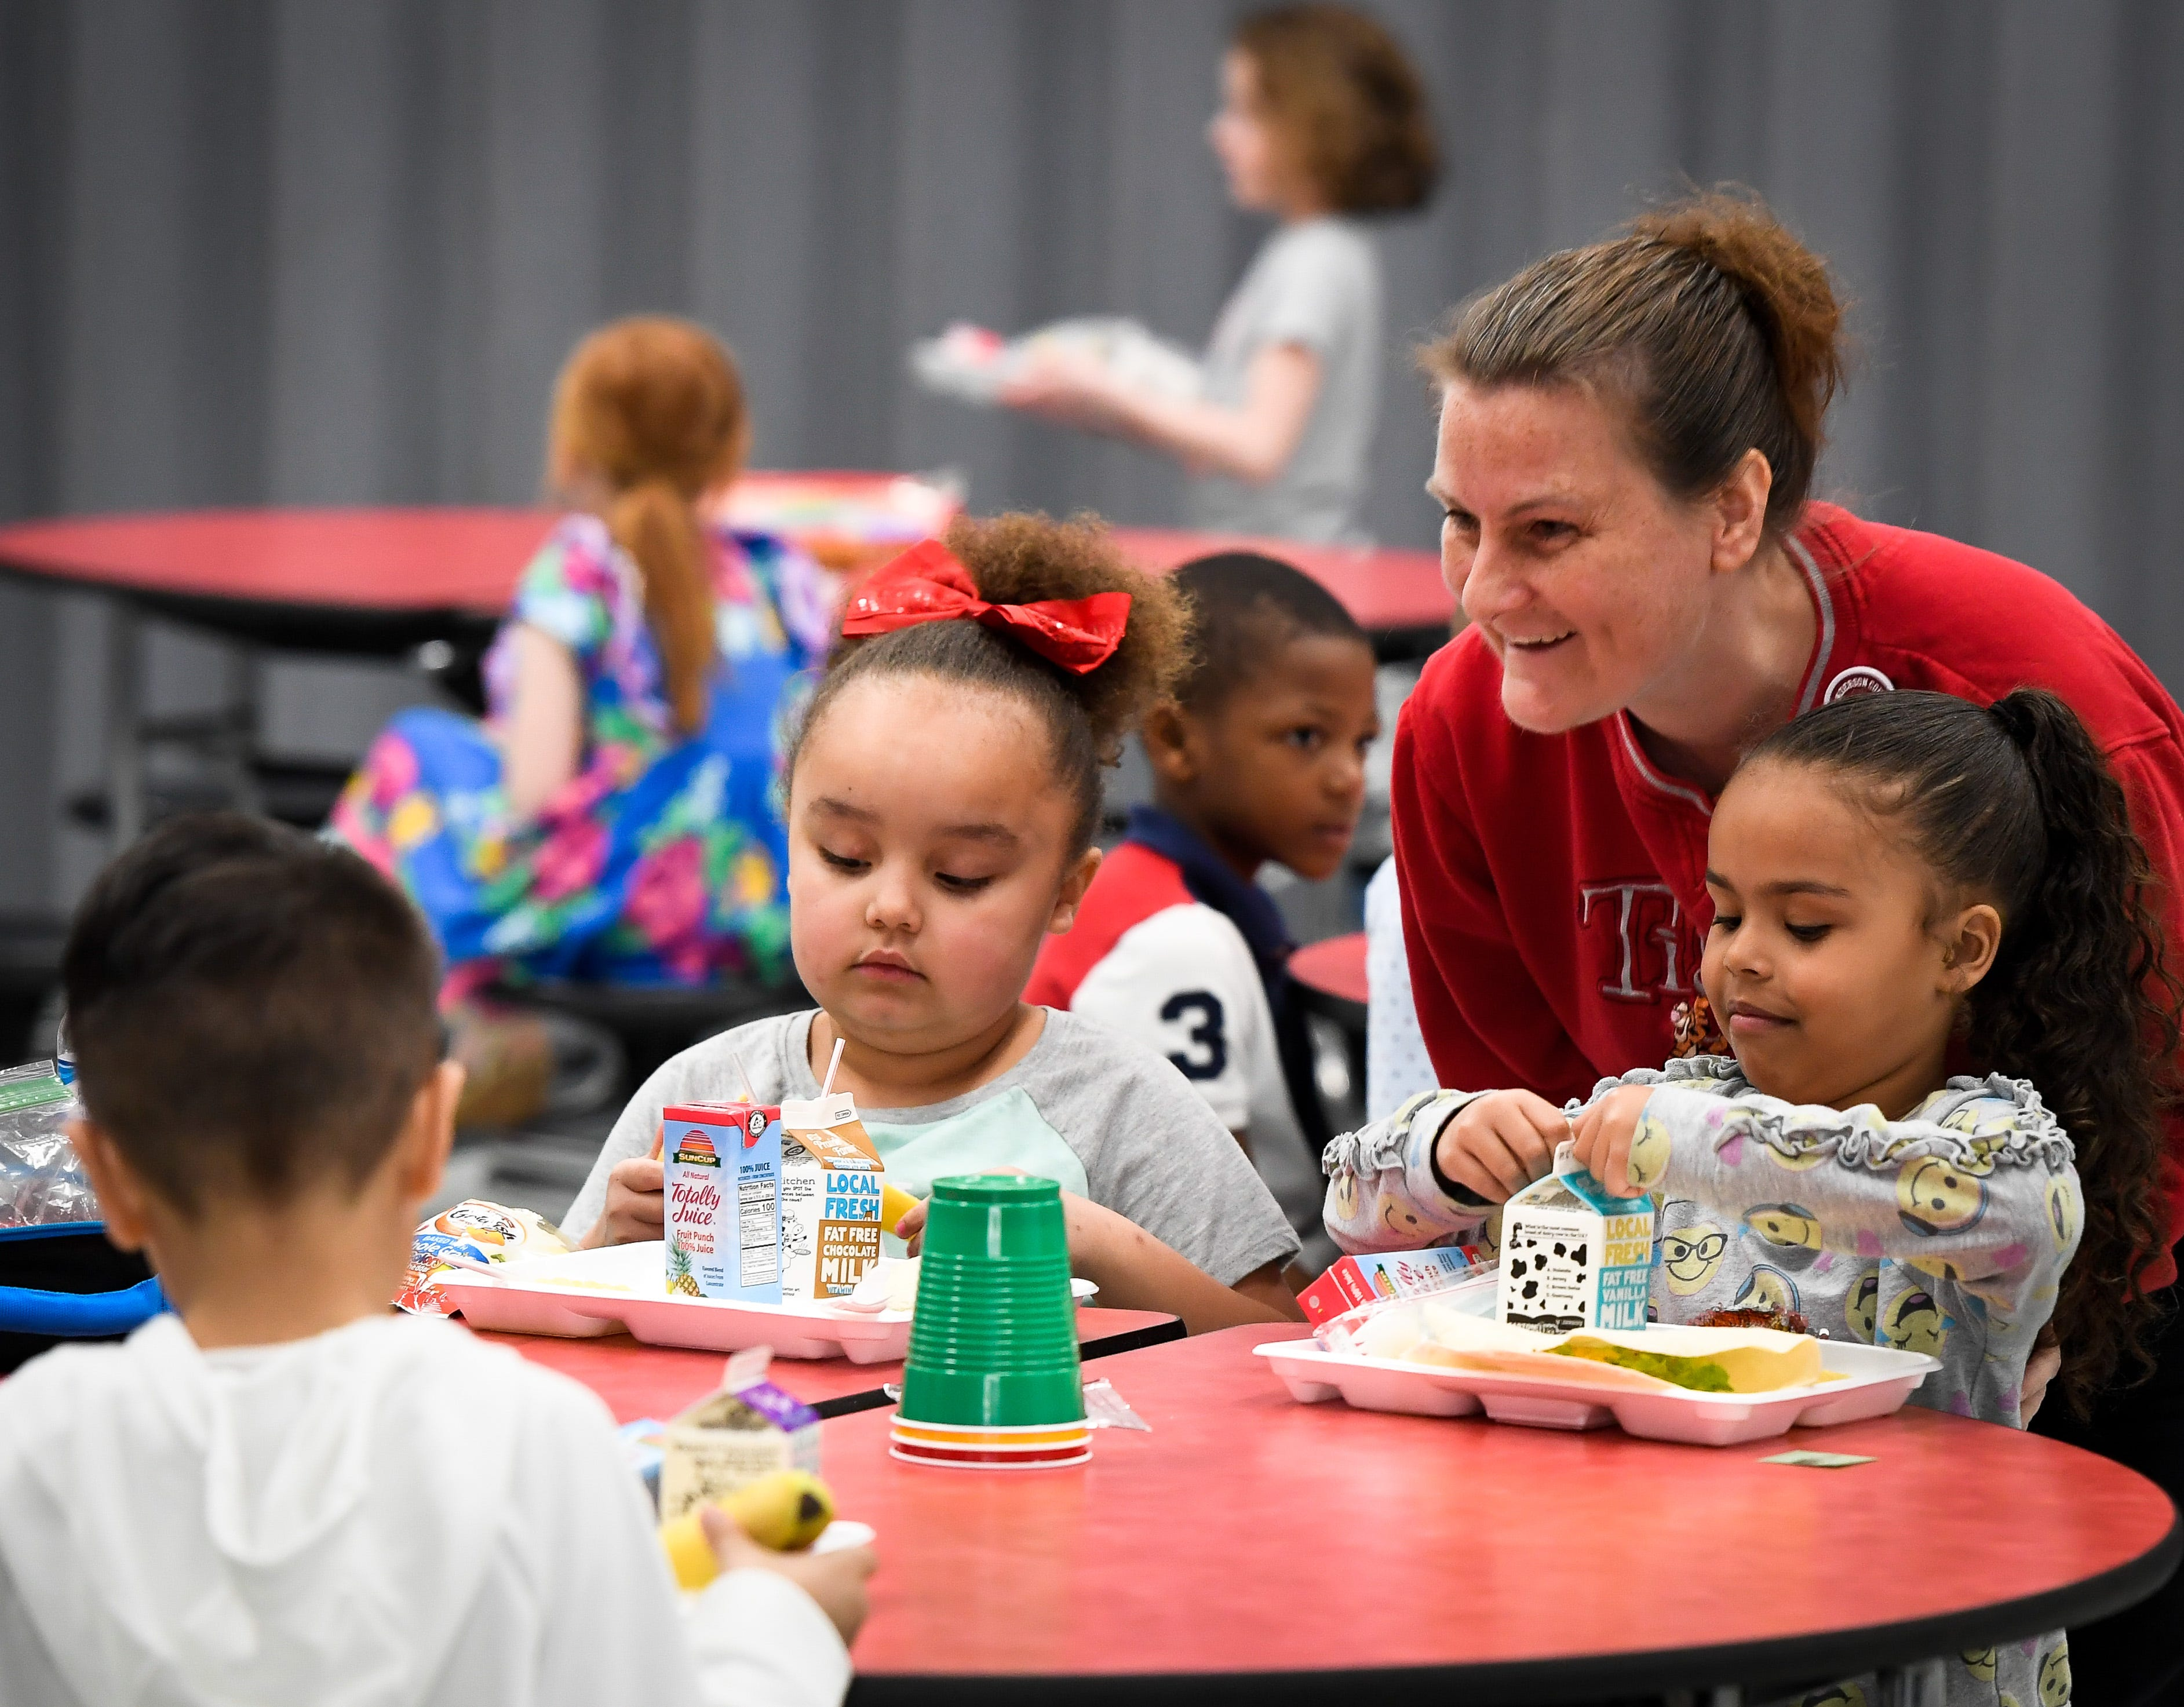 Jennifer Murphy checks in with a table of dinners as she helps monitor the lunchroom at Henderson's East Heights Elementary School Tuesday, March 26, 2019.